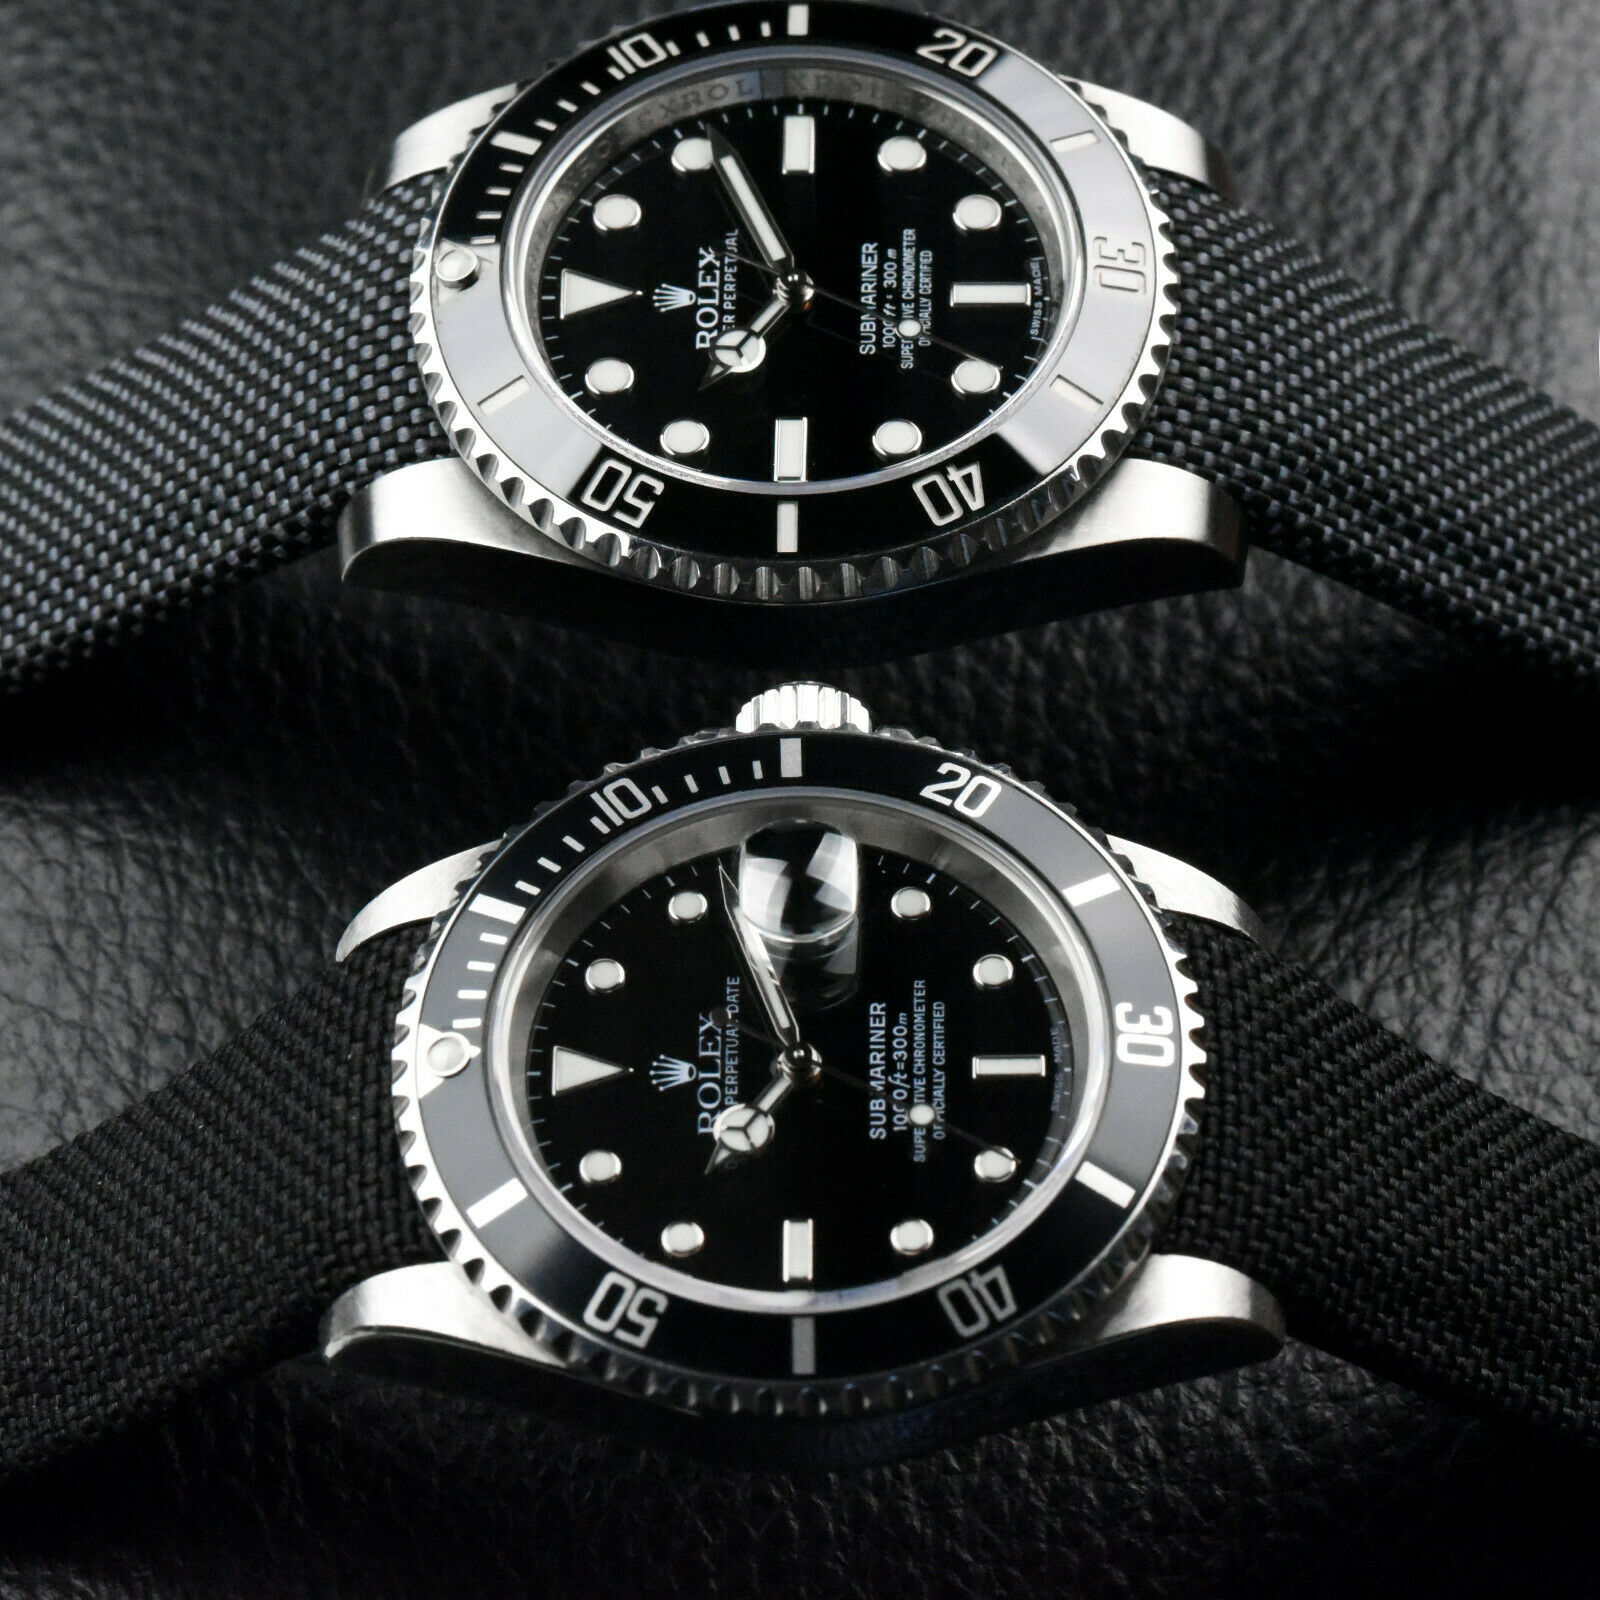 Everest Nylon Strap in Grey and Black on Rolex Subs   https://www.watchvault.com.au/strapstore/everest-curved-end-nylon-strap-for-rolex-with-tang-buckle